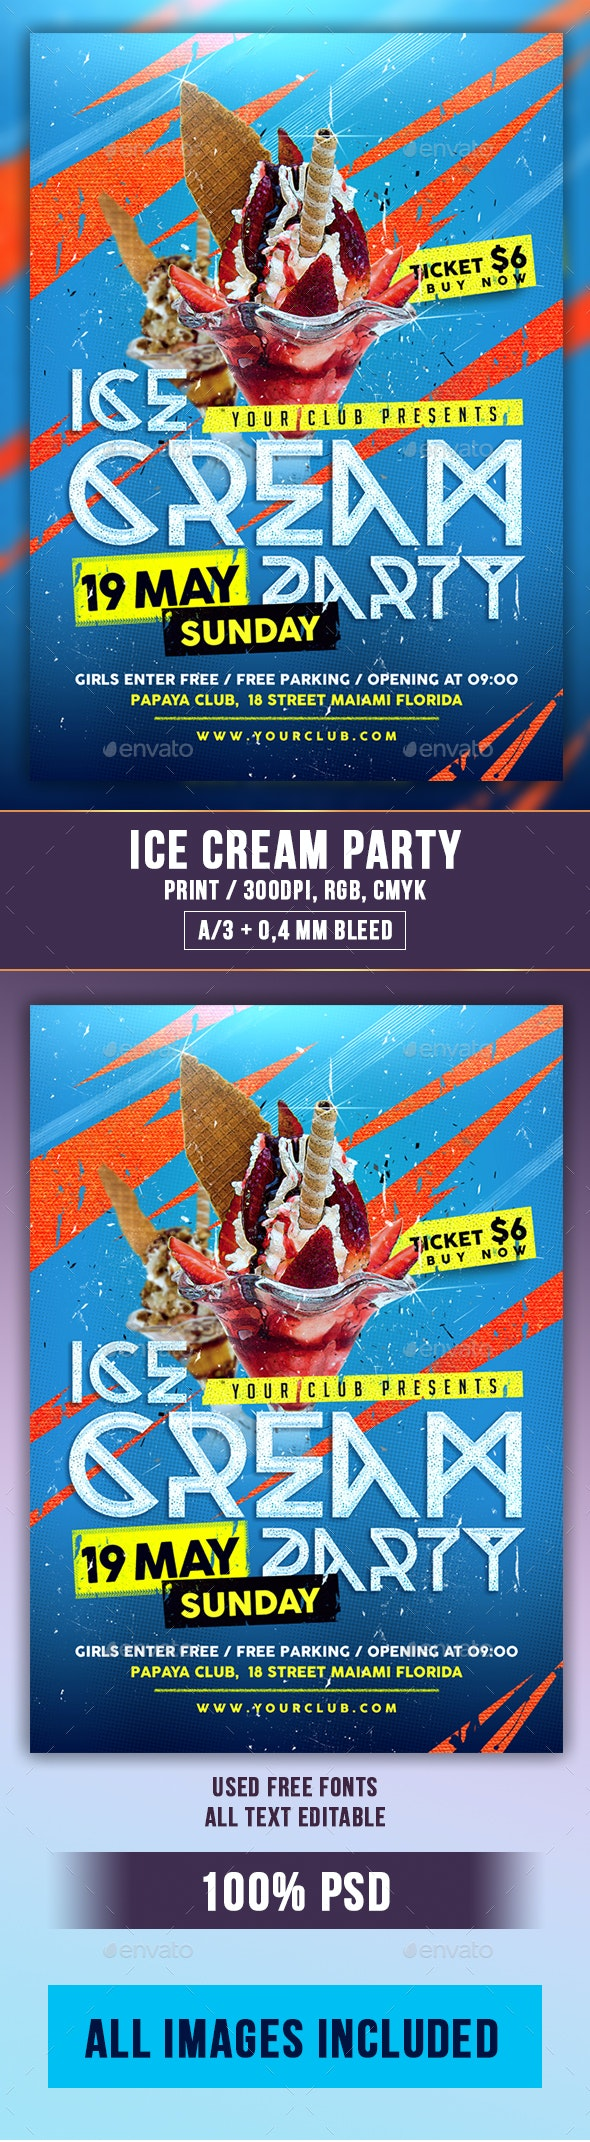 Ice Cream Party Flyer PSD Template - Clubs & Parties Events